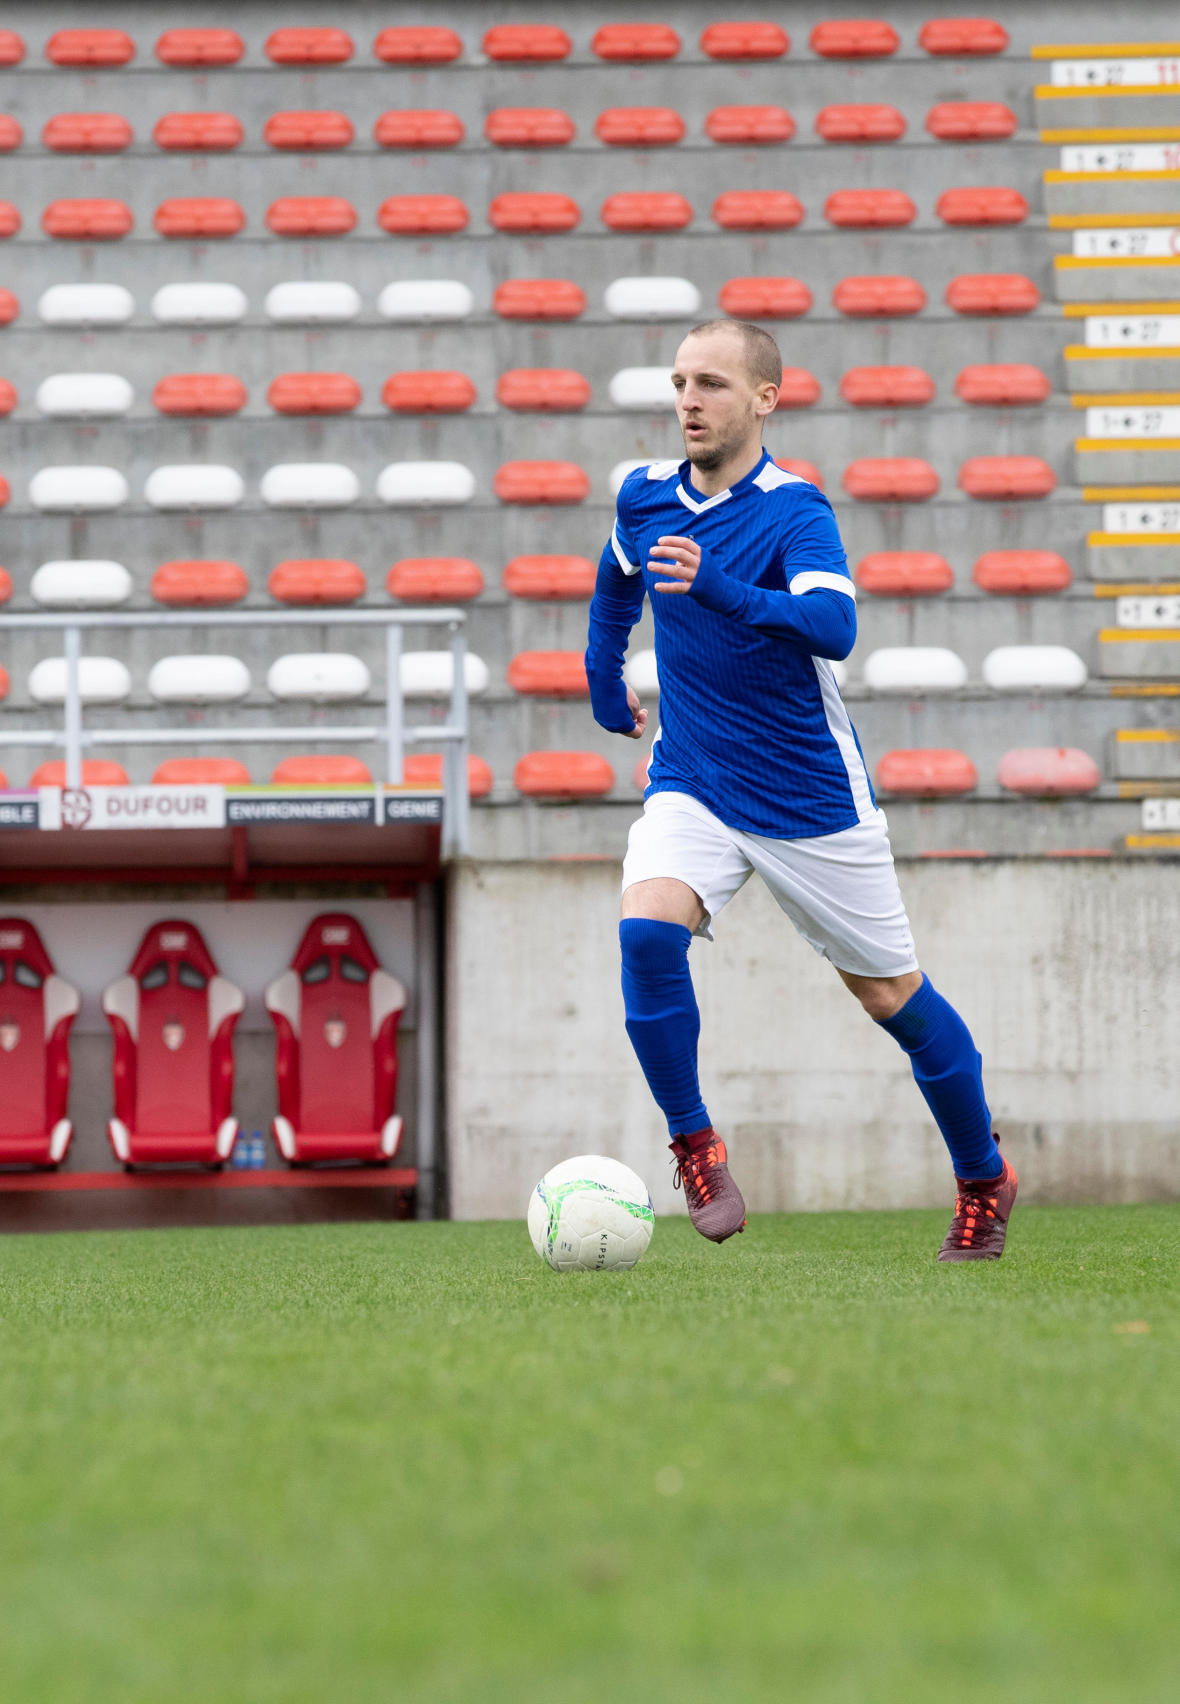 Gagner-place-titulaire-football